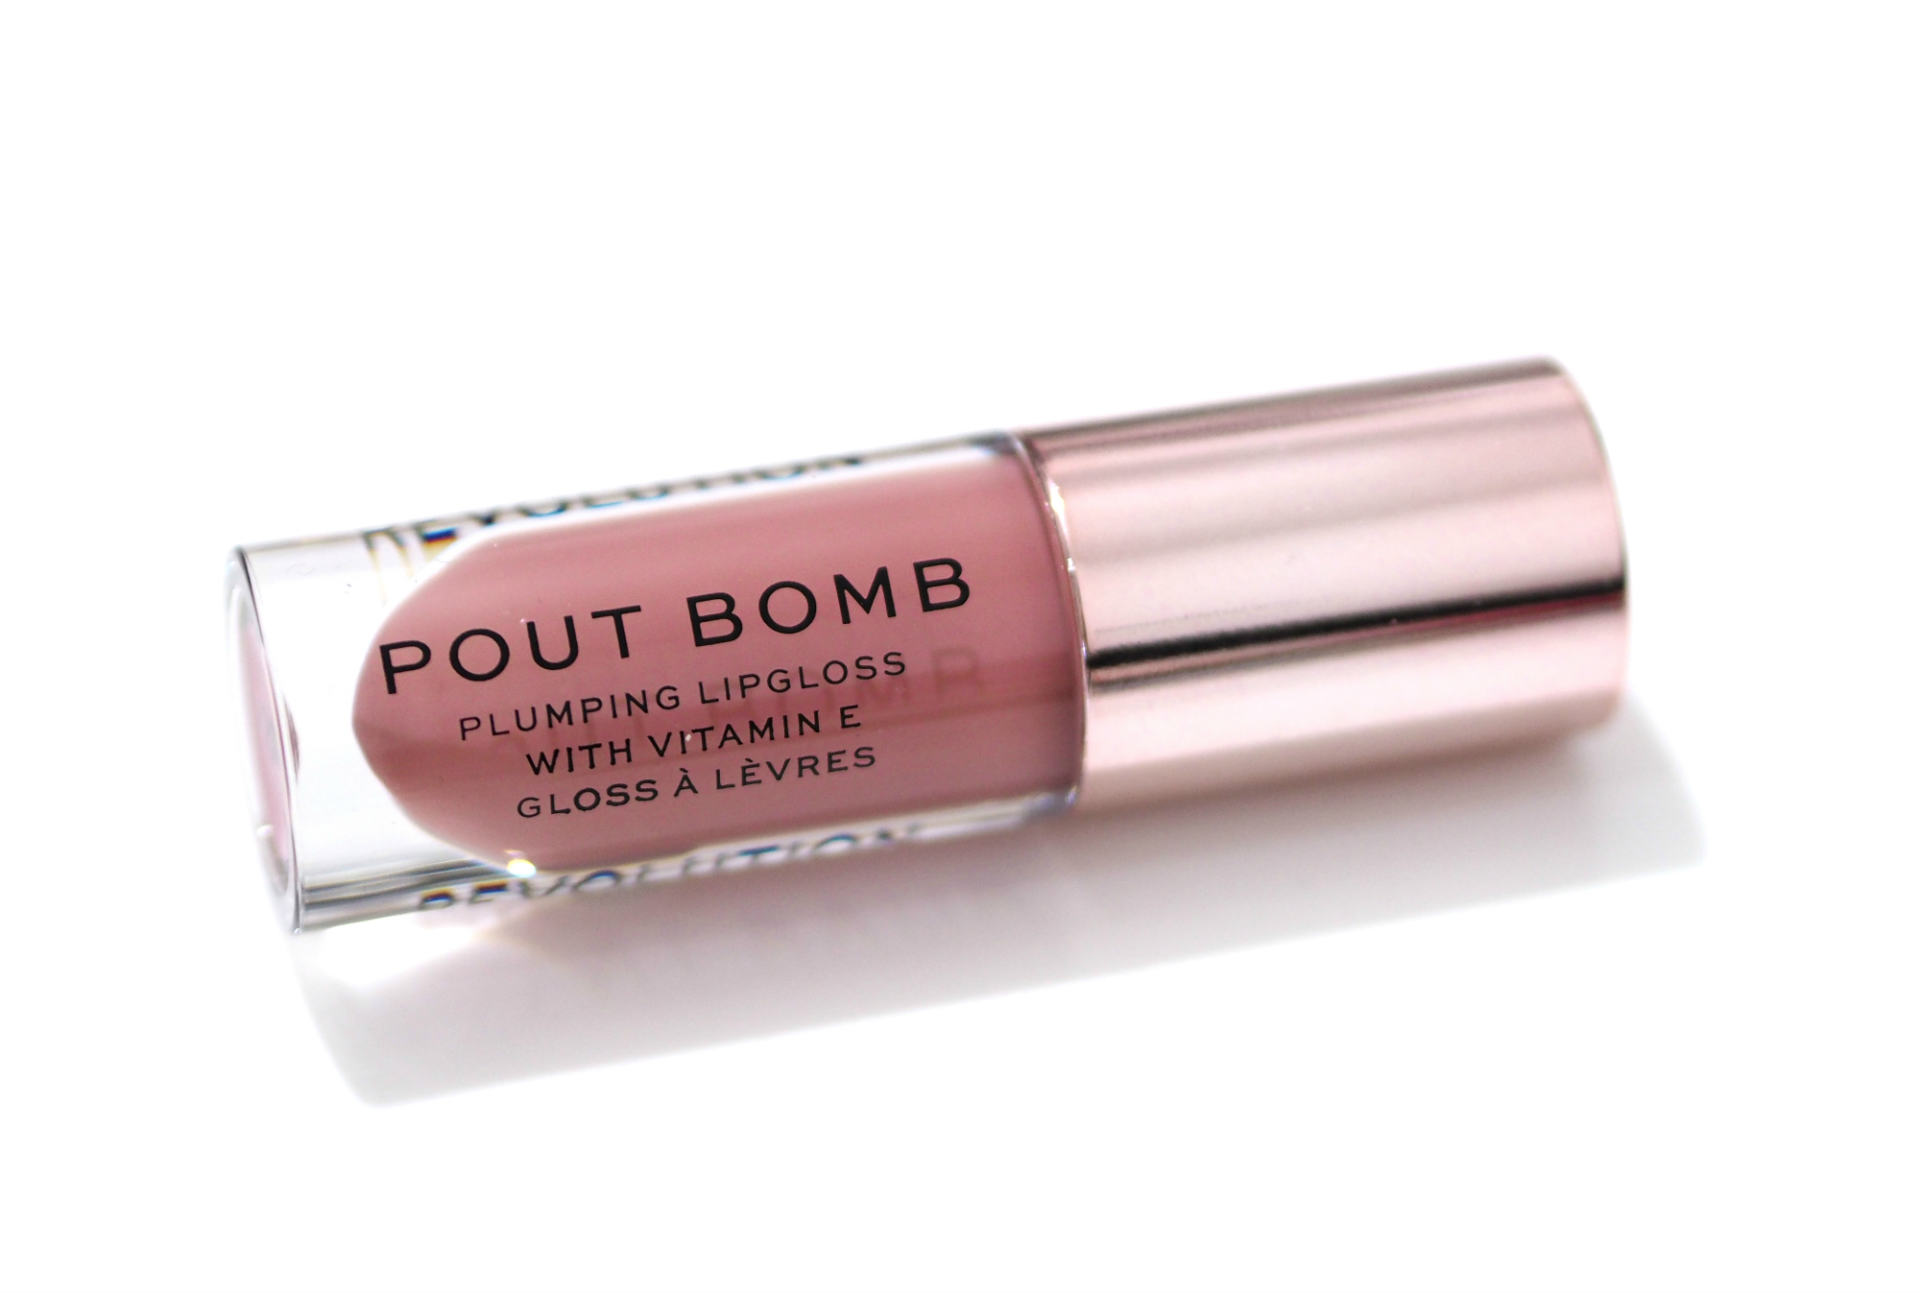 Revolution Pout Bomb Plumping Lip Gloss Review and Swatches